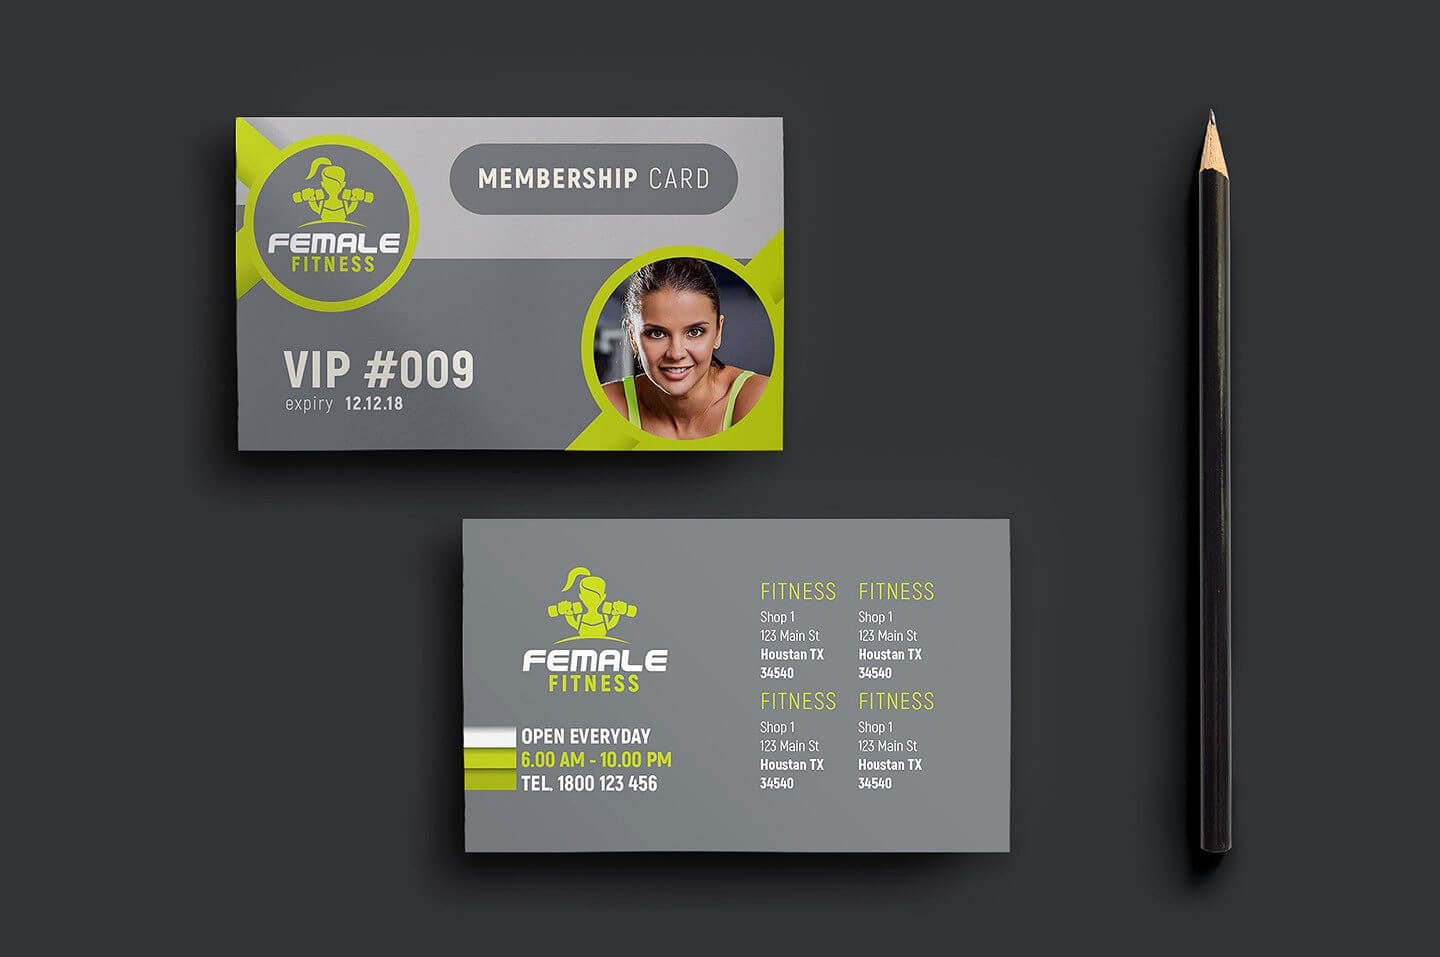 Gym Membership Card - Calep.midnightpig.co Intended For Gym Membership Card Template